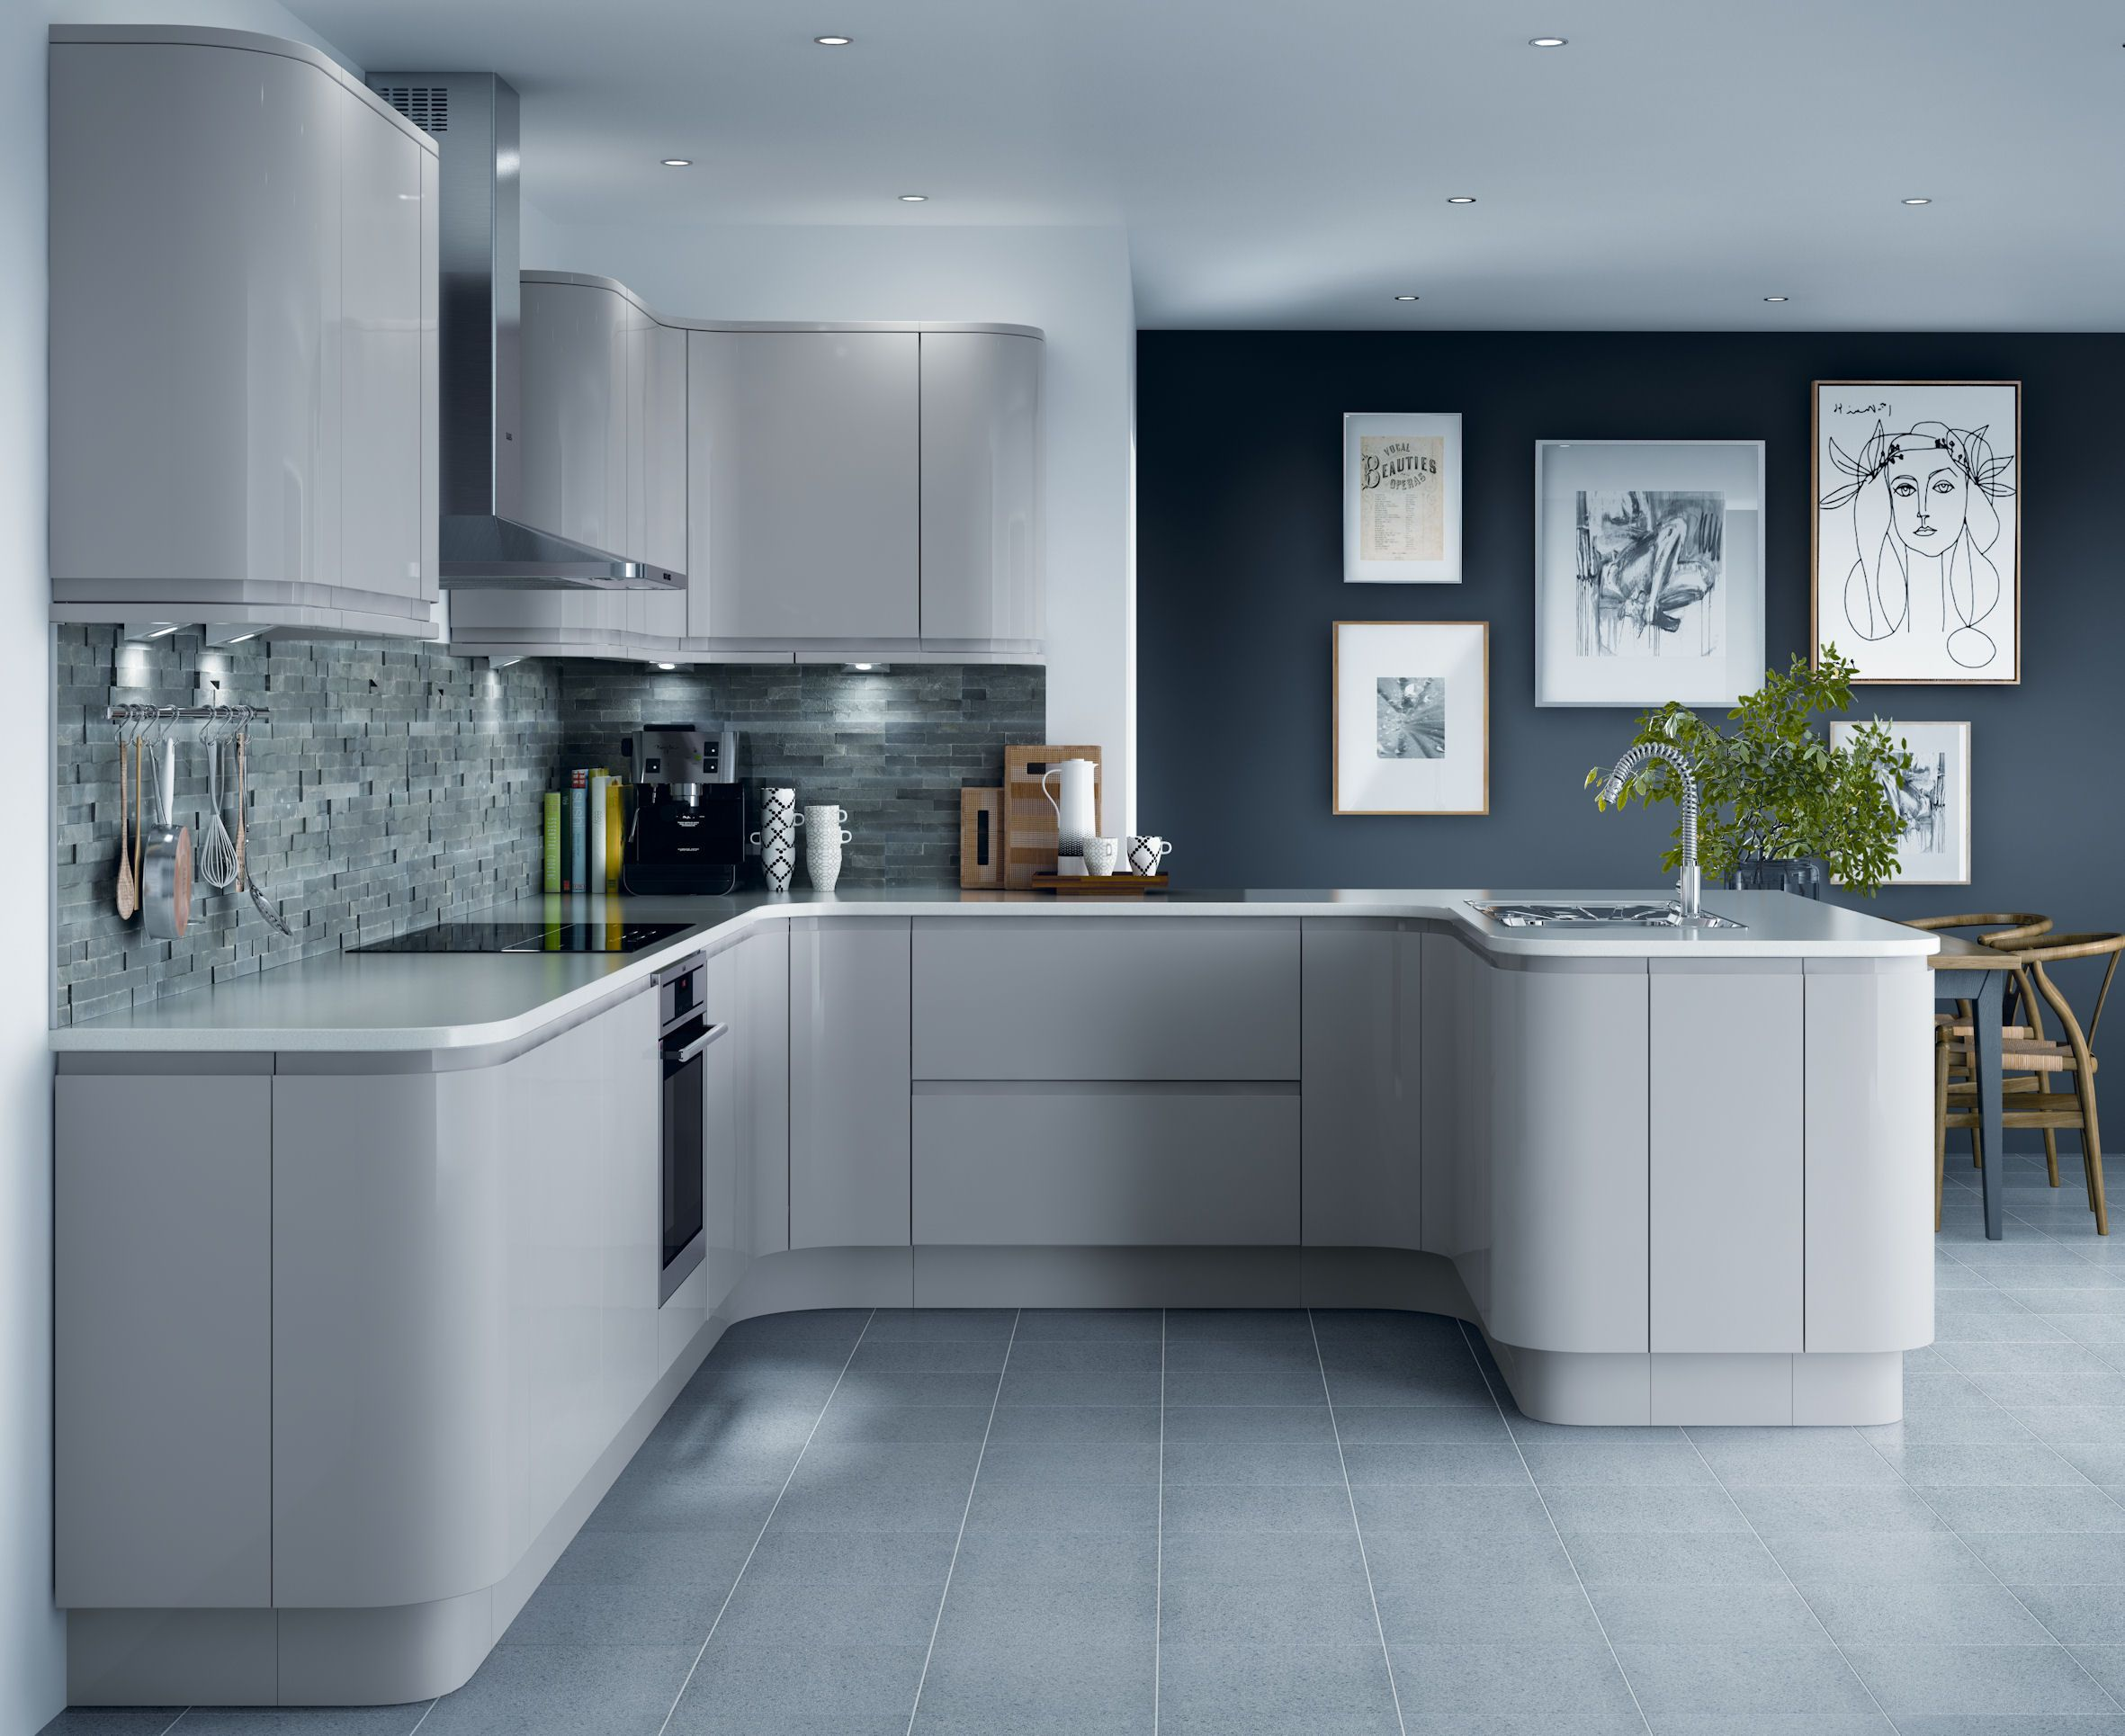 Pewter Kitchen Propertypriceadvice Co Uk Kitchen Living Kitchen Layout Modern Kitchen Design